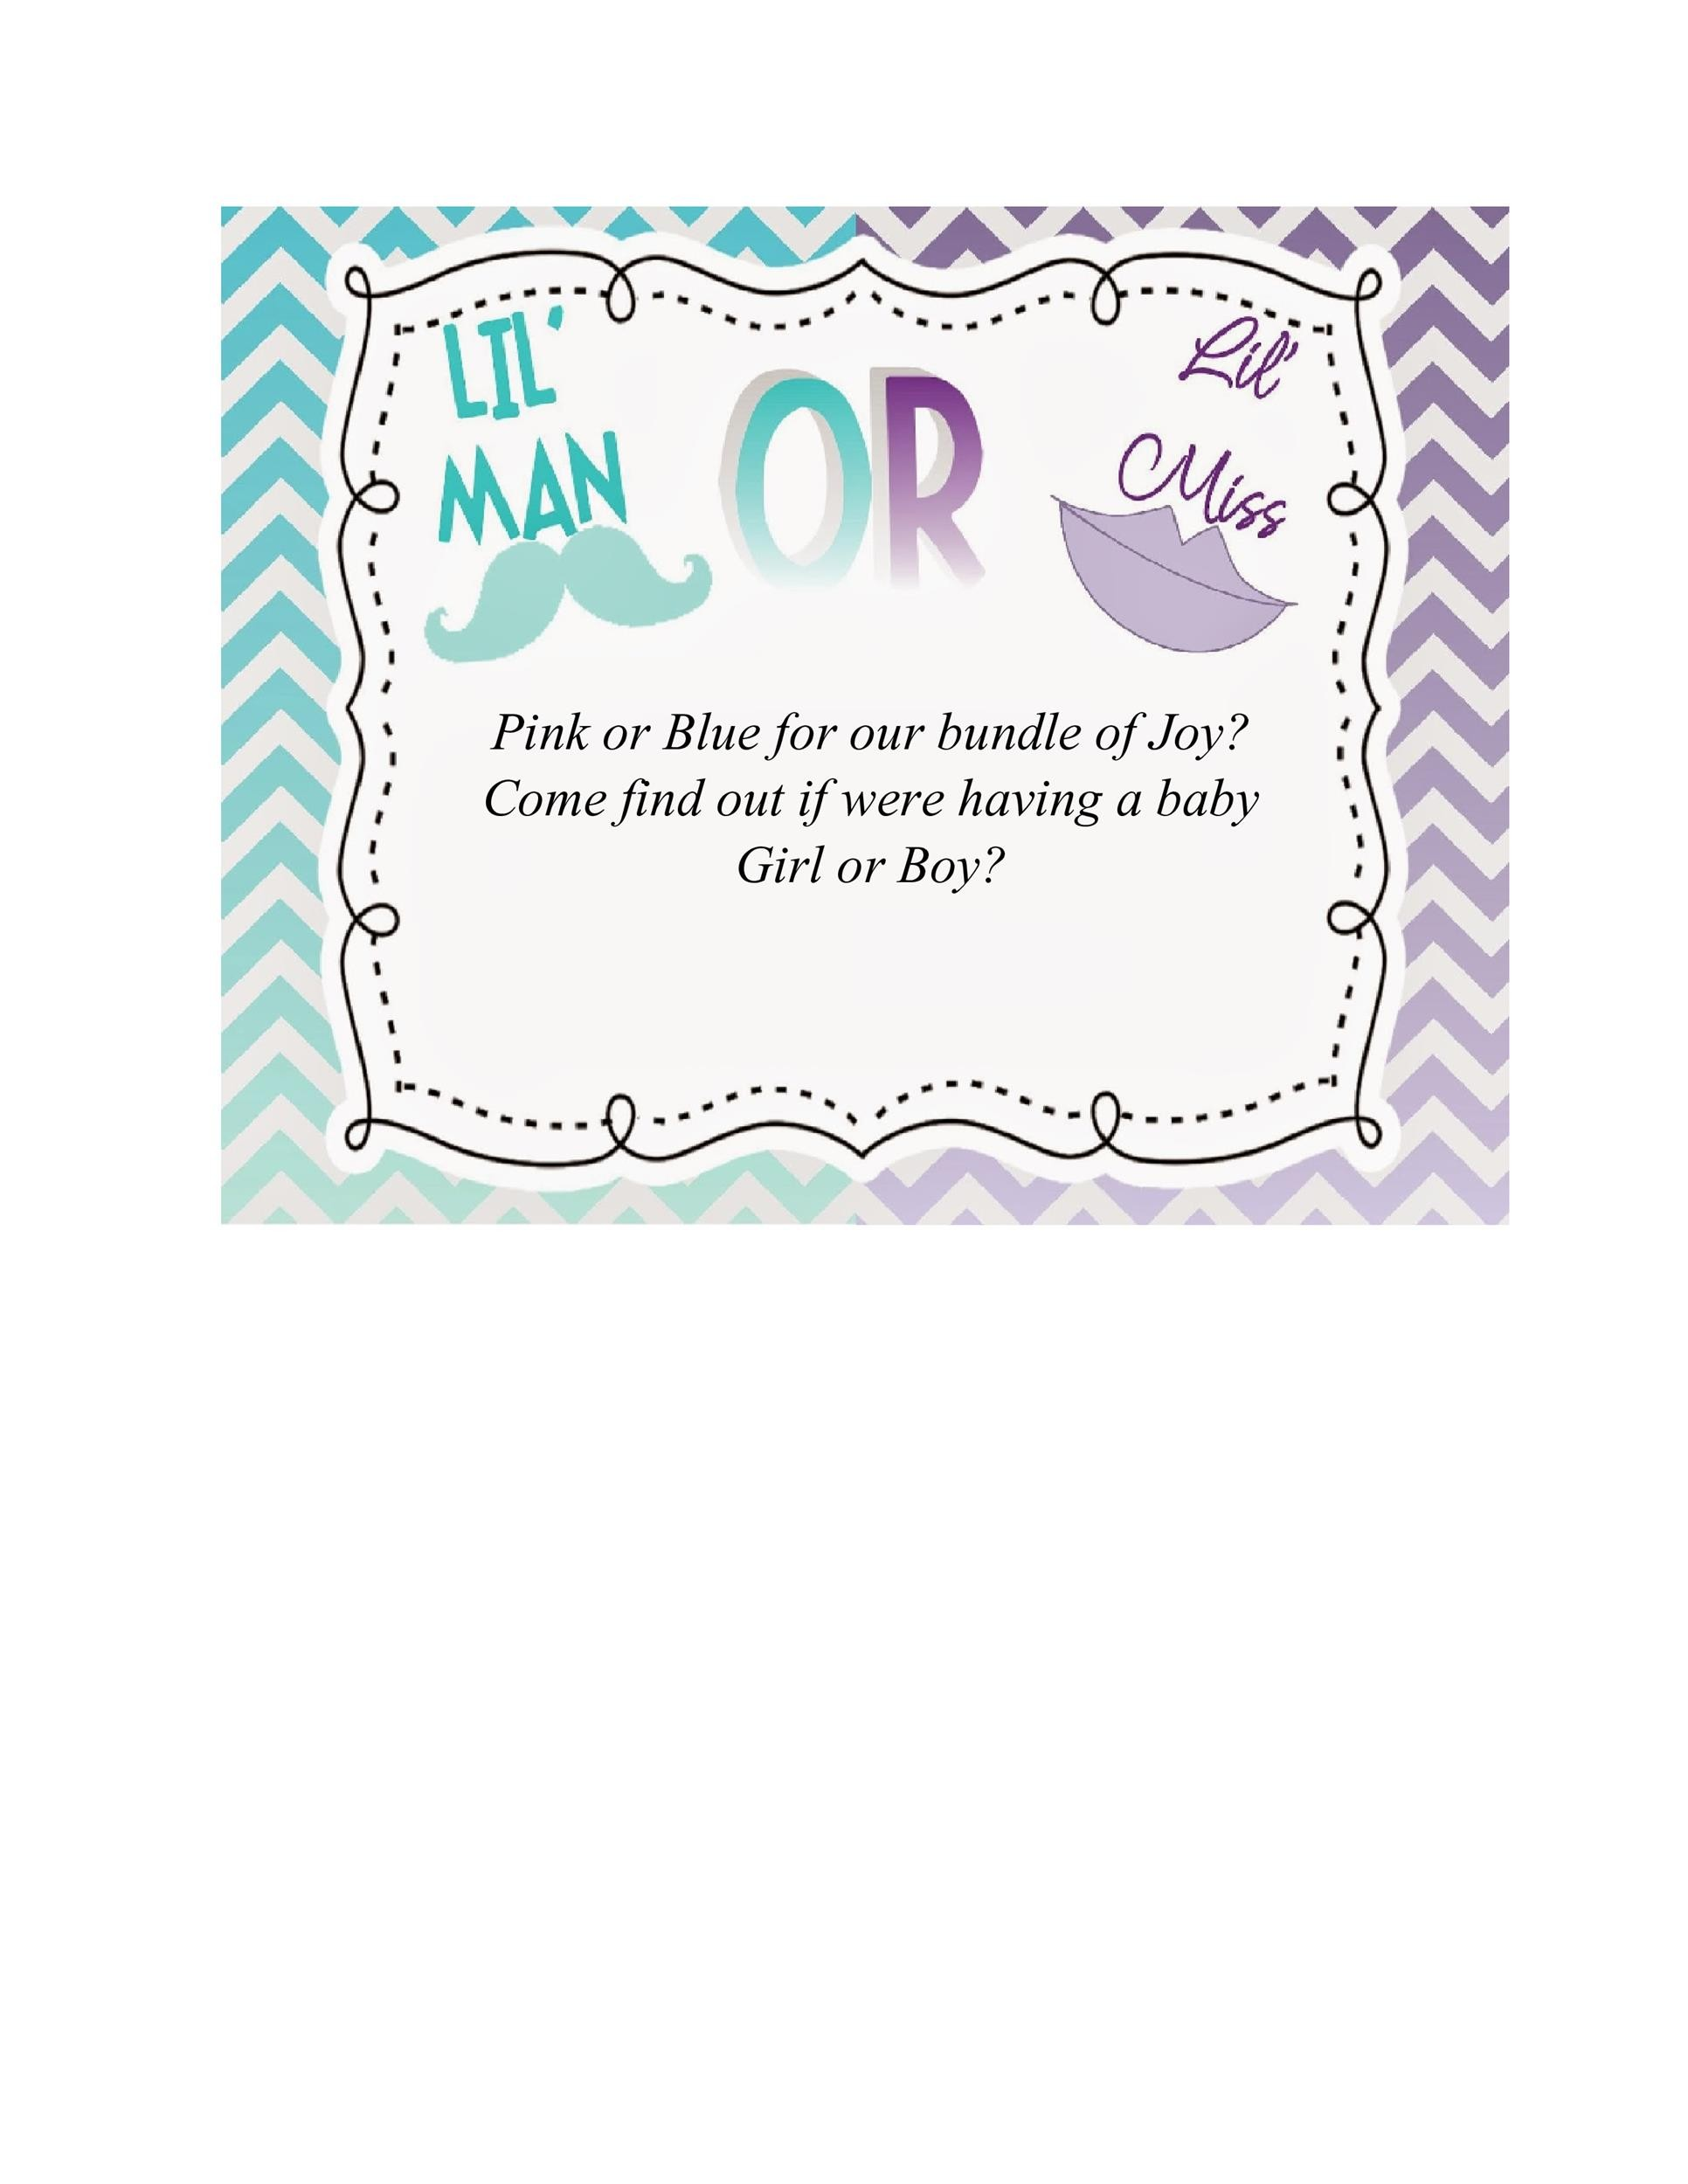 photograph relating to Printable Gender Reveal Invitations known as 17 Free of charge Gender Demonstrate Invitation Templates ᐅ Template Lab